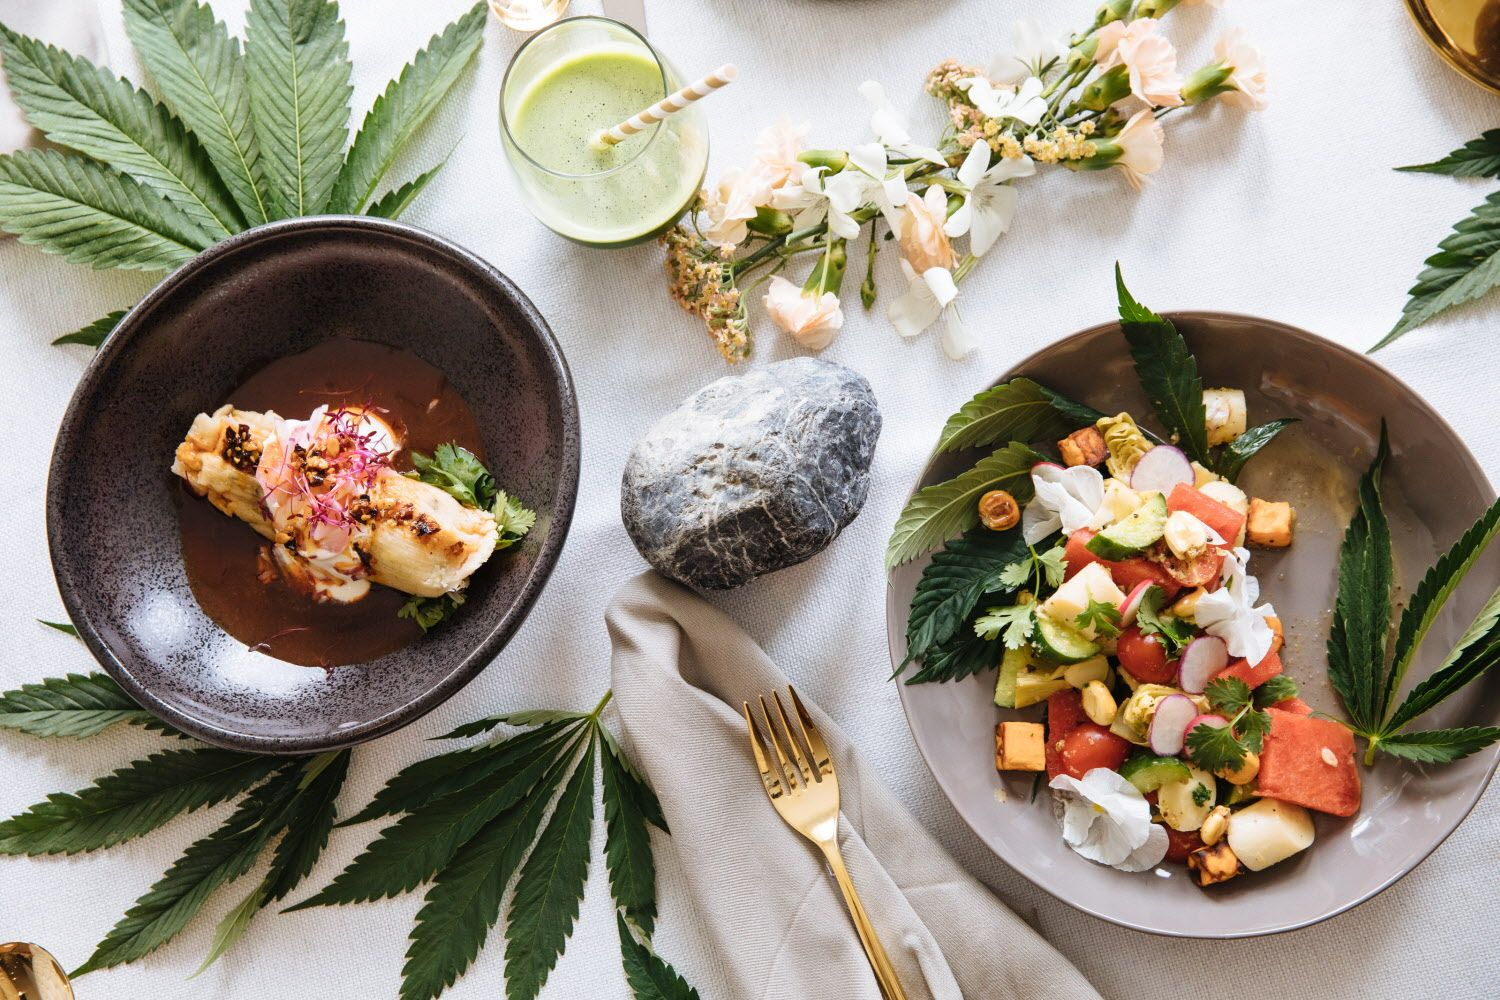 The vegetarian tamale dish, left, with charred scallions and poblanos, mushrooms, Monterey jack, mole and their CBC infused chili and Hearts of Palm Aguachile dish with  artichokes, cucumber, cherry tomatoes, roasted sweet potato, radish and corn photographed at Flourish Cannabis kitchen in San Francisco, Calif. Tuesday, August 8, 2017.